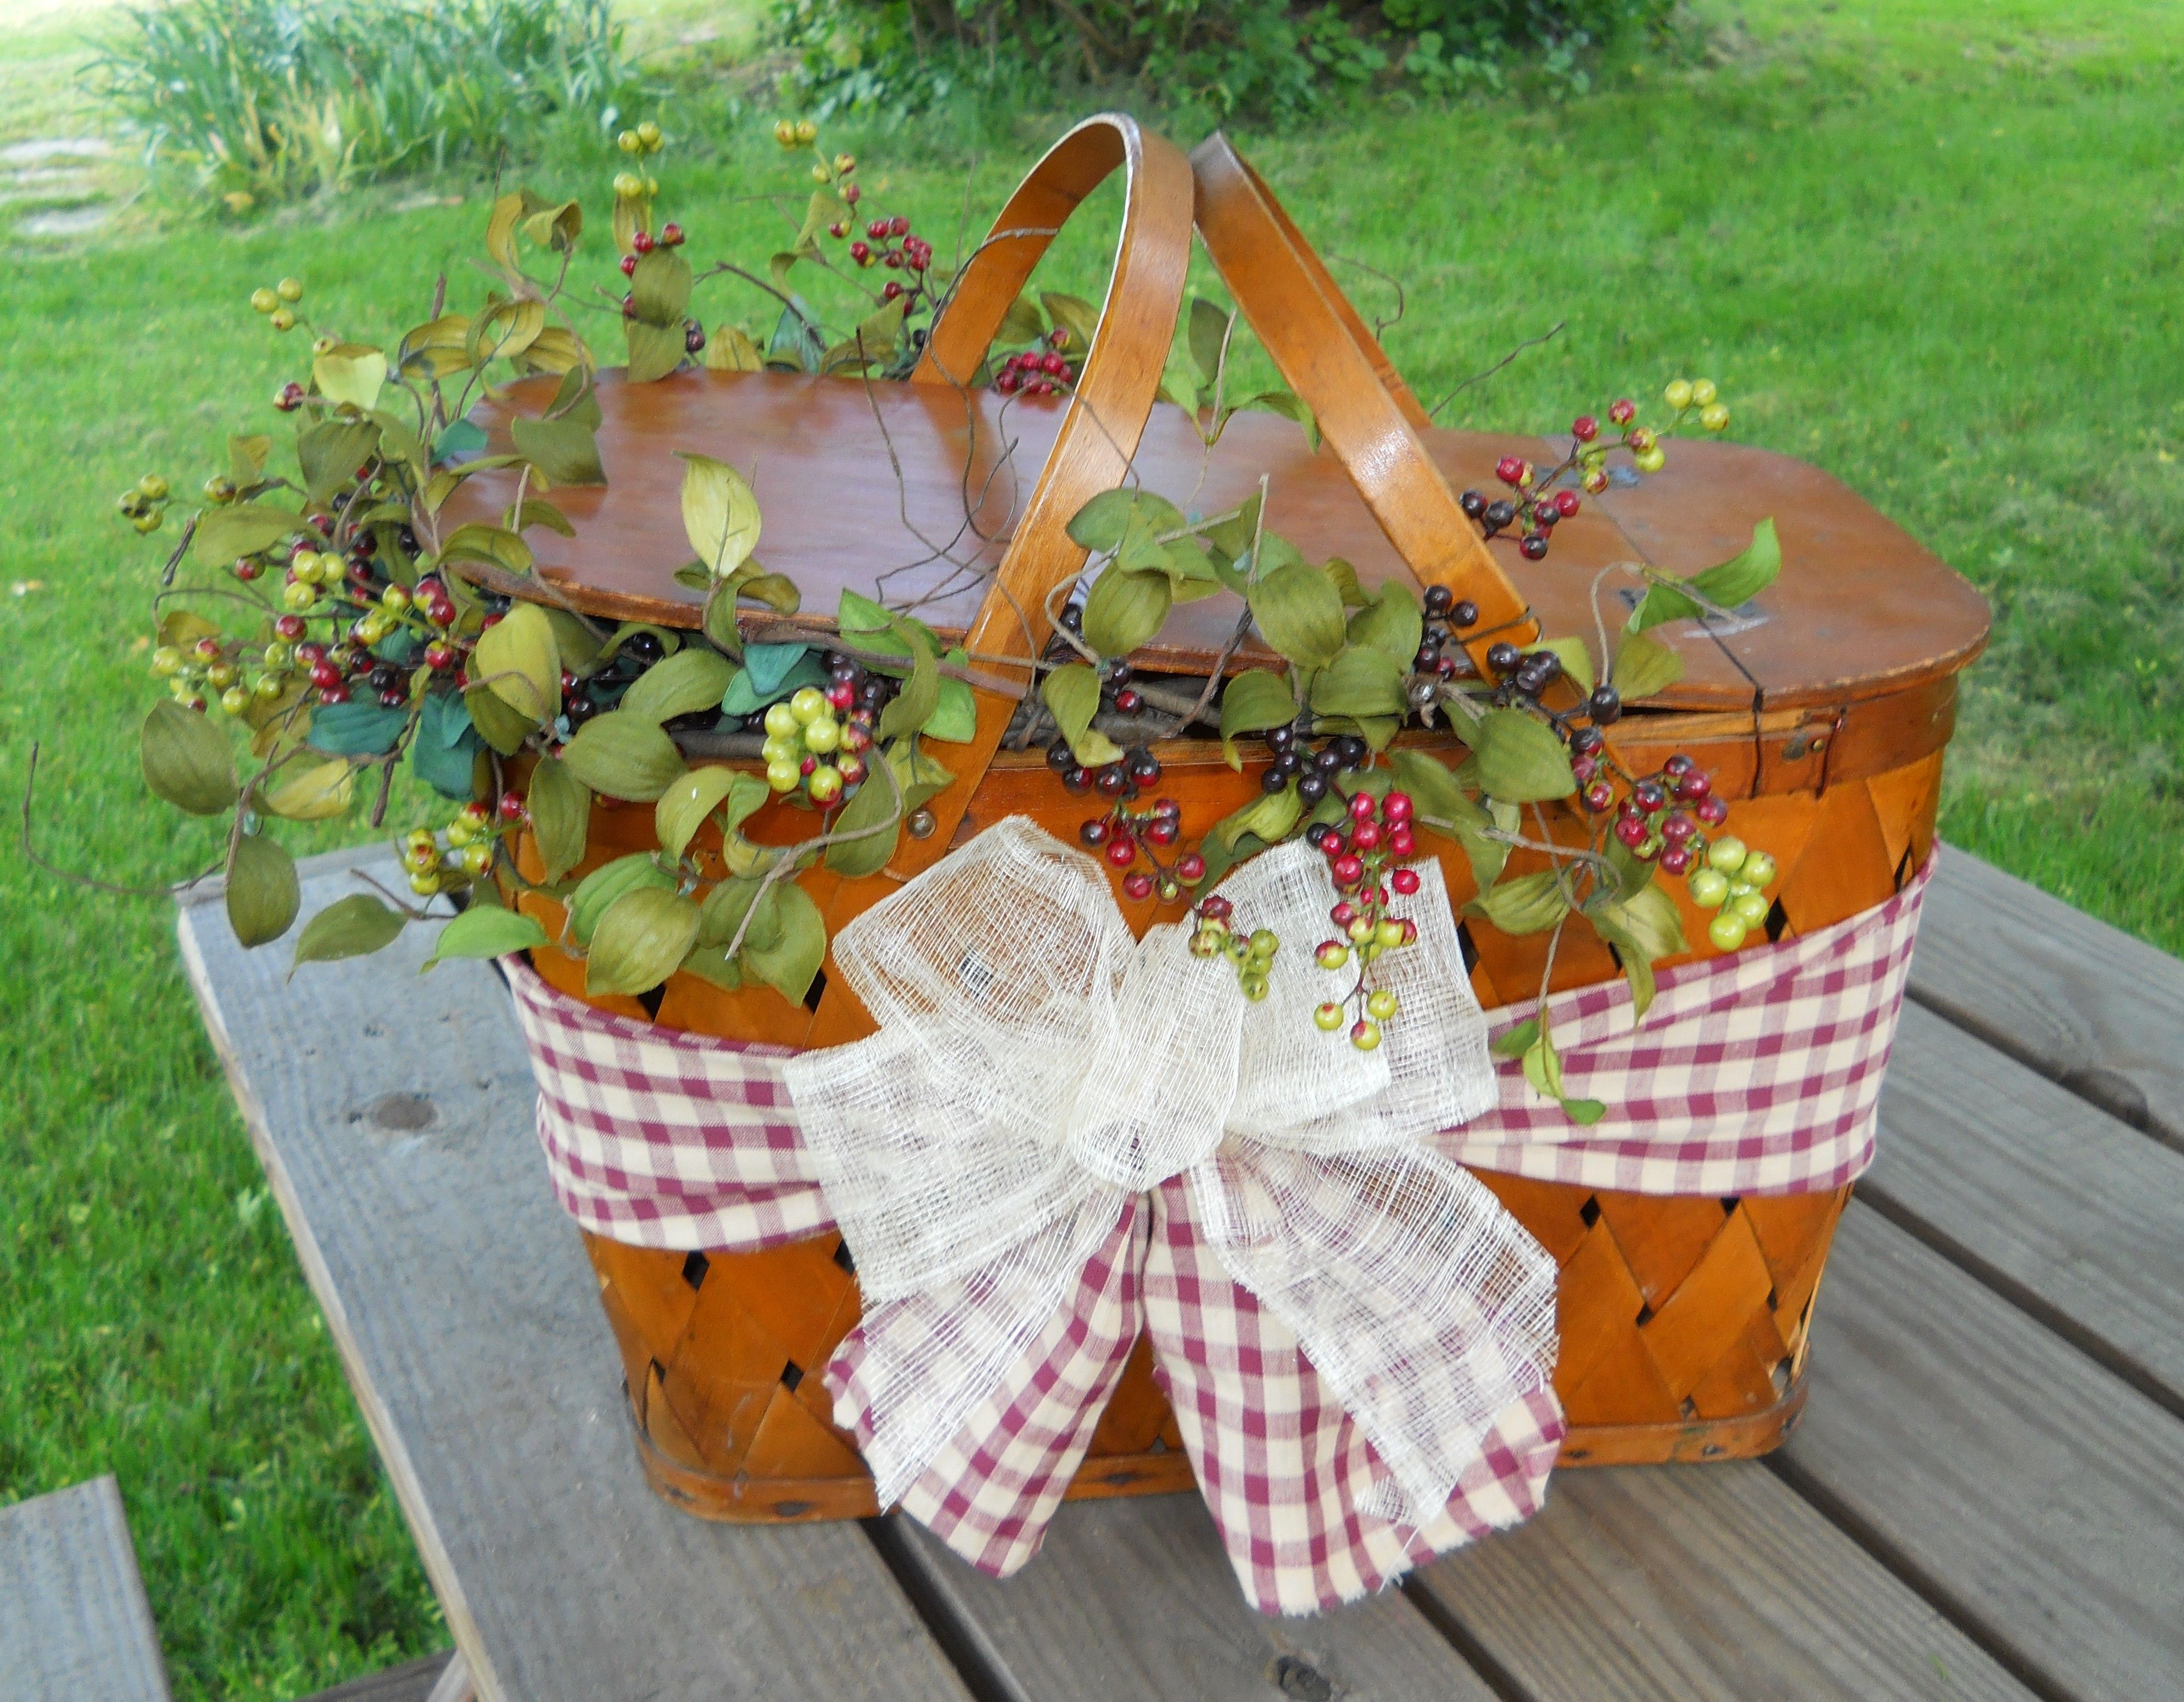 Decorated Picnic Basket By Country Craft House Basket